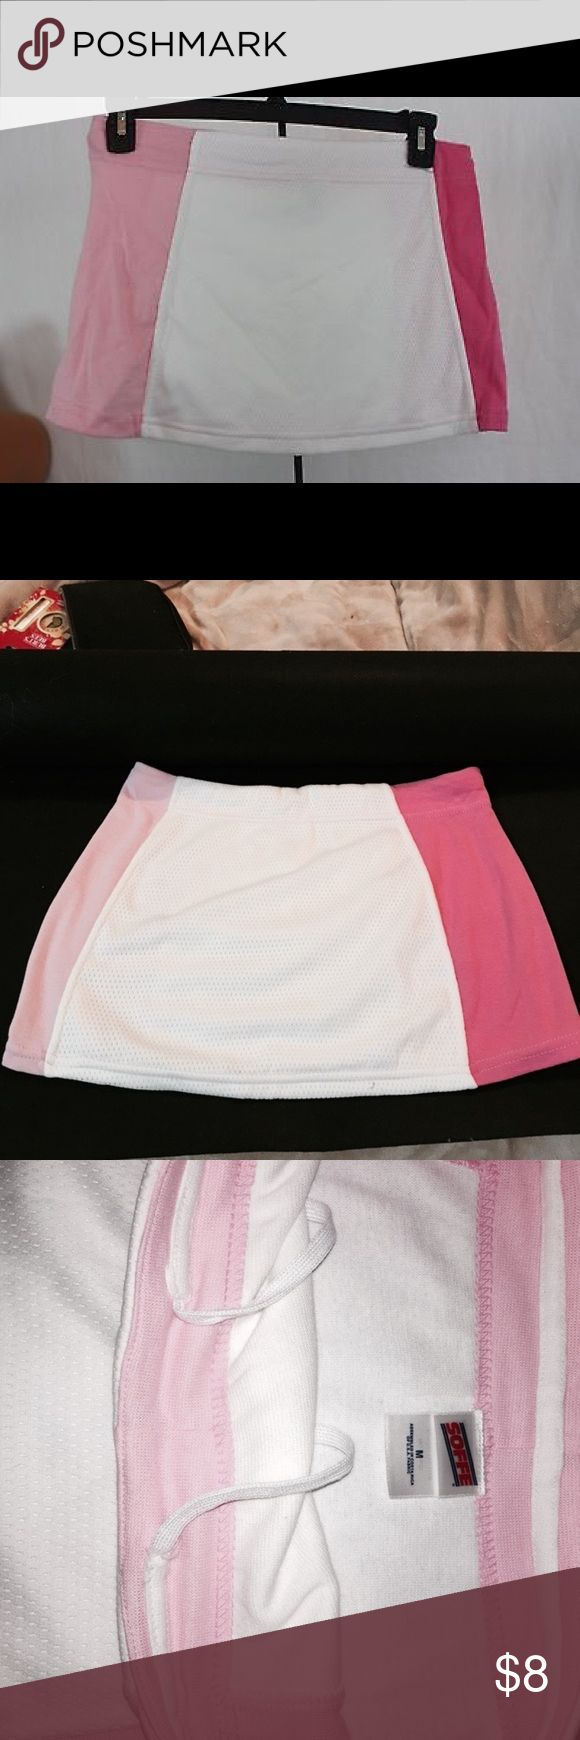 Soffee pink and white athletic skirt New never worn pink and white athletic/ Tennis skirt Size Medium Skirts